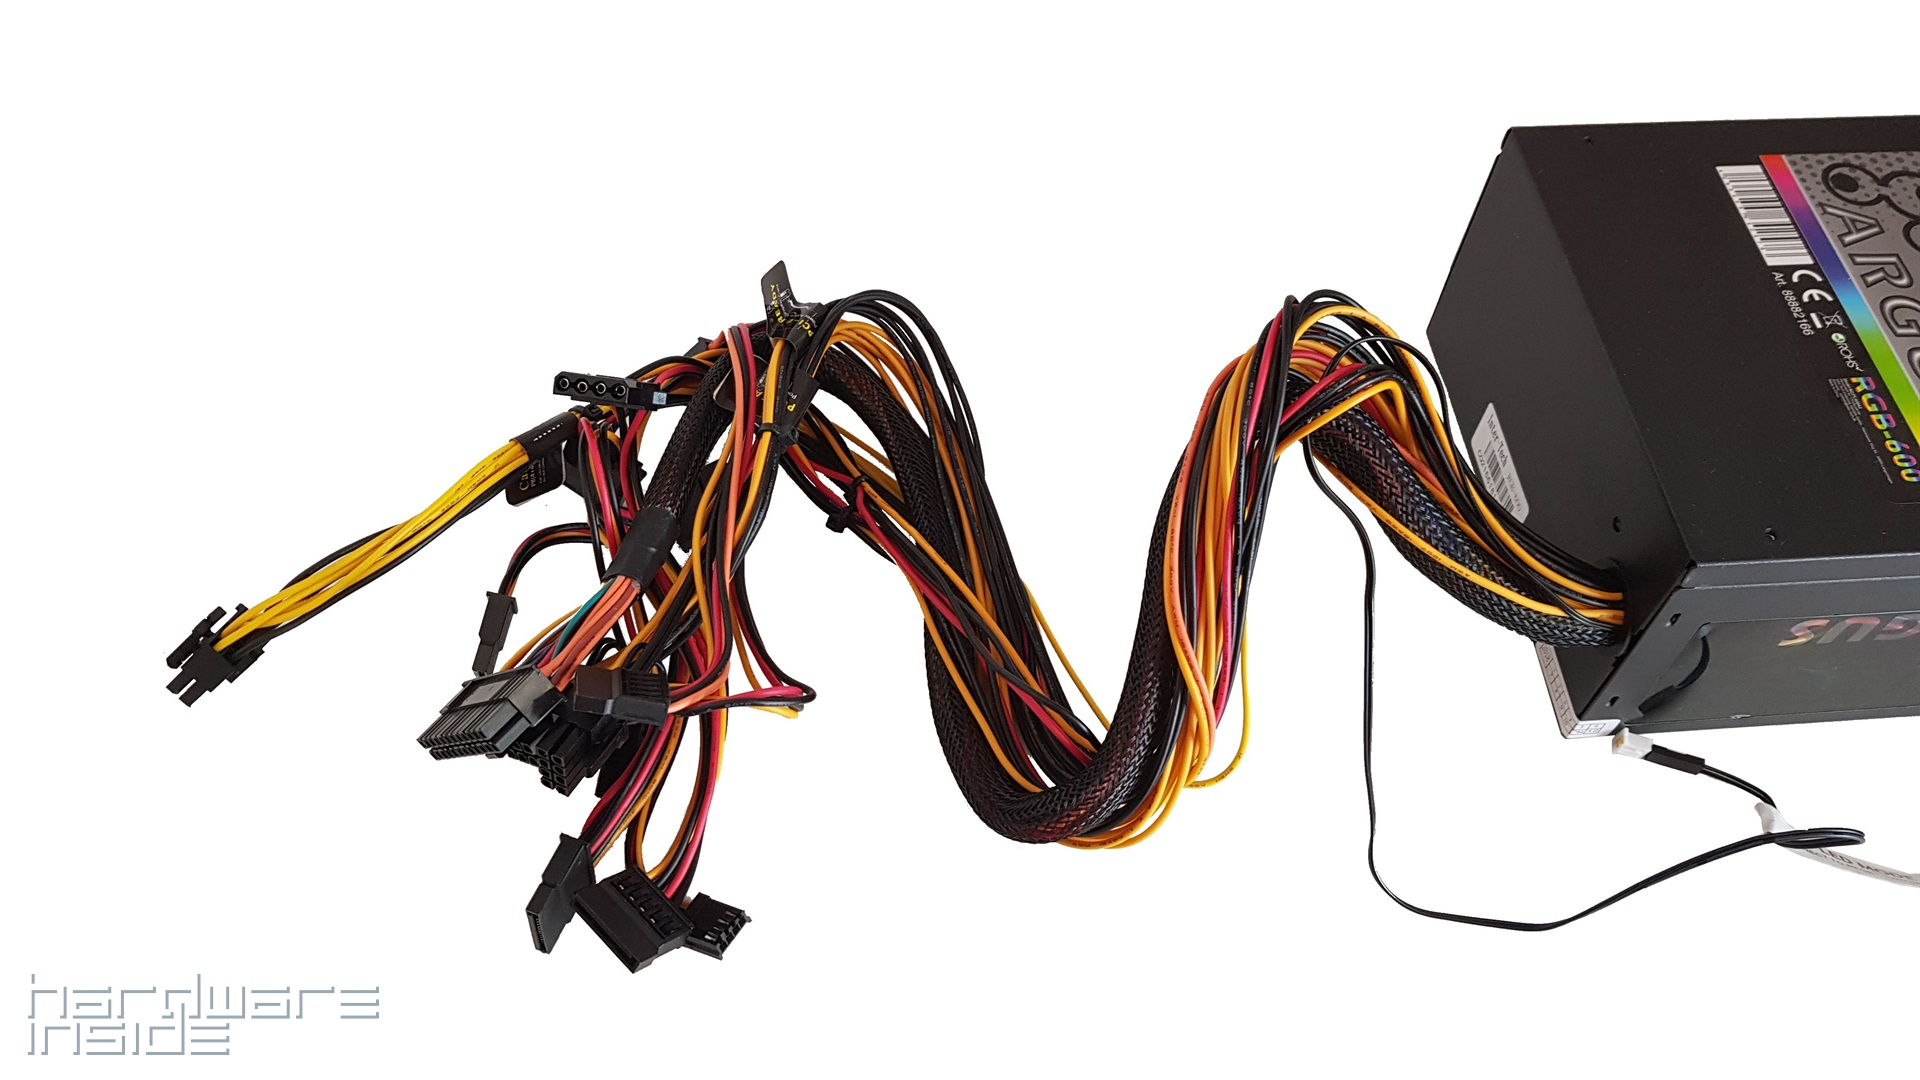 Inter-Tech Argus RGB Gaming Power Supply 600w - 10.jpg